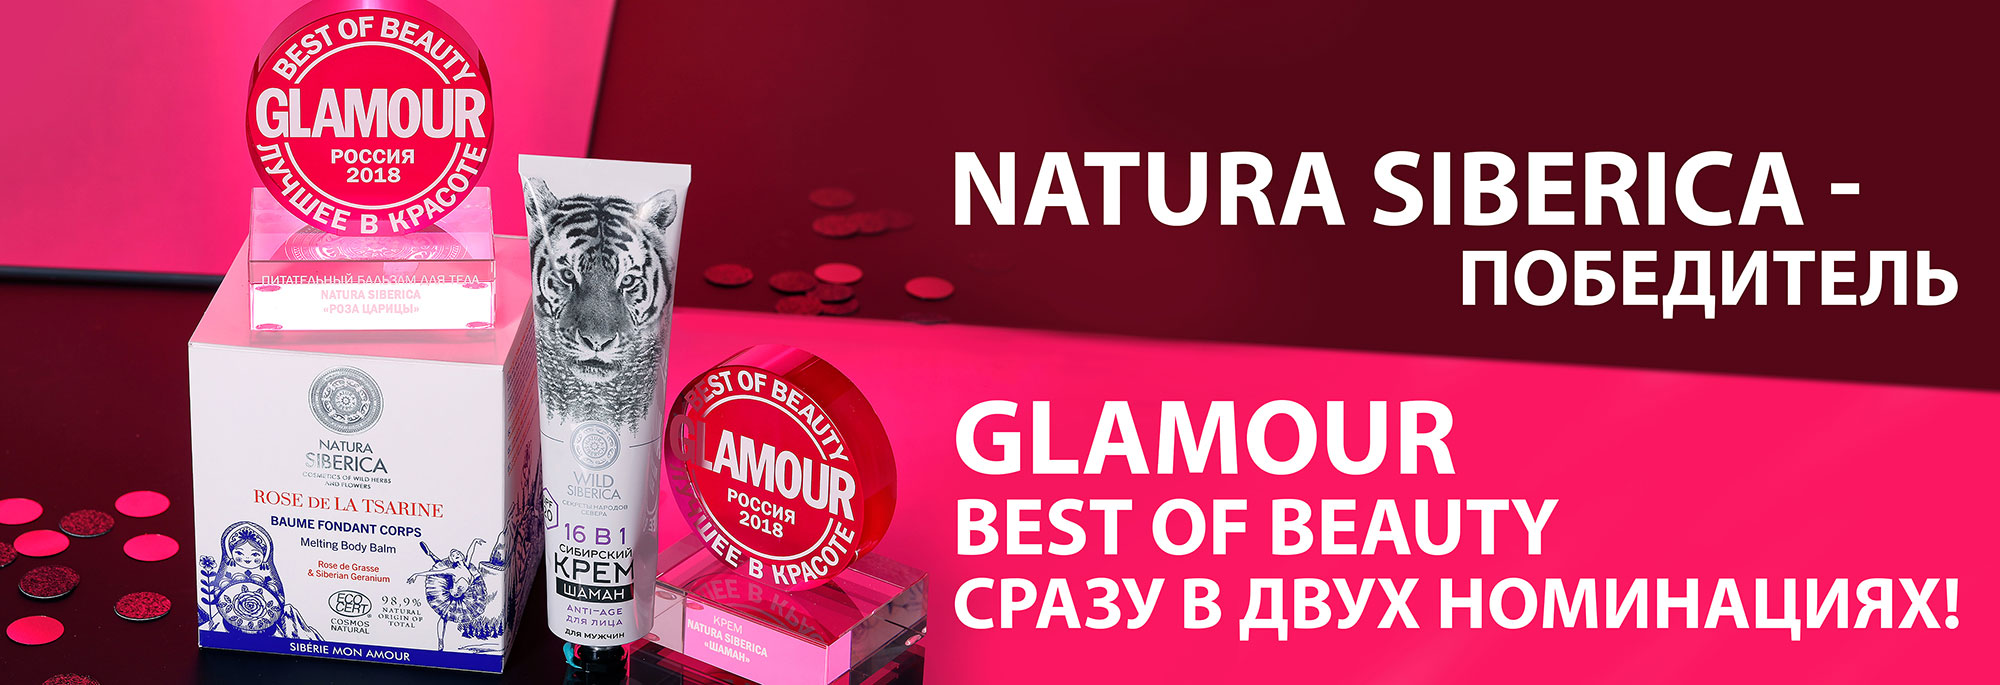 Glamour Best of Beauty 2018!